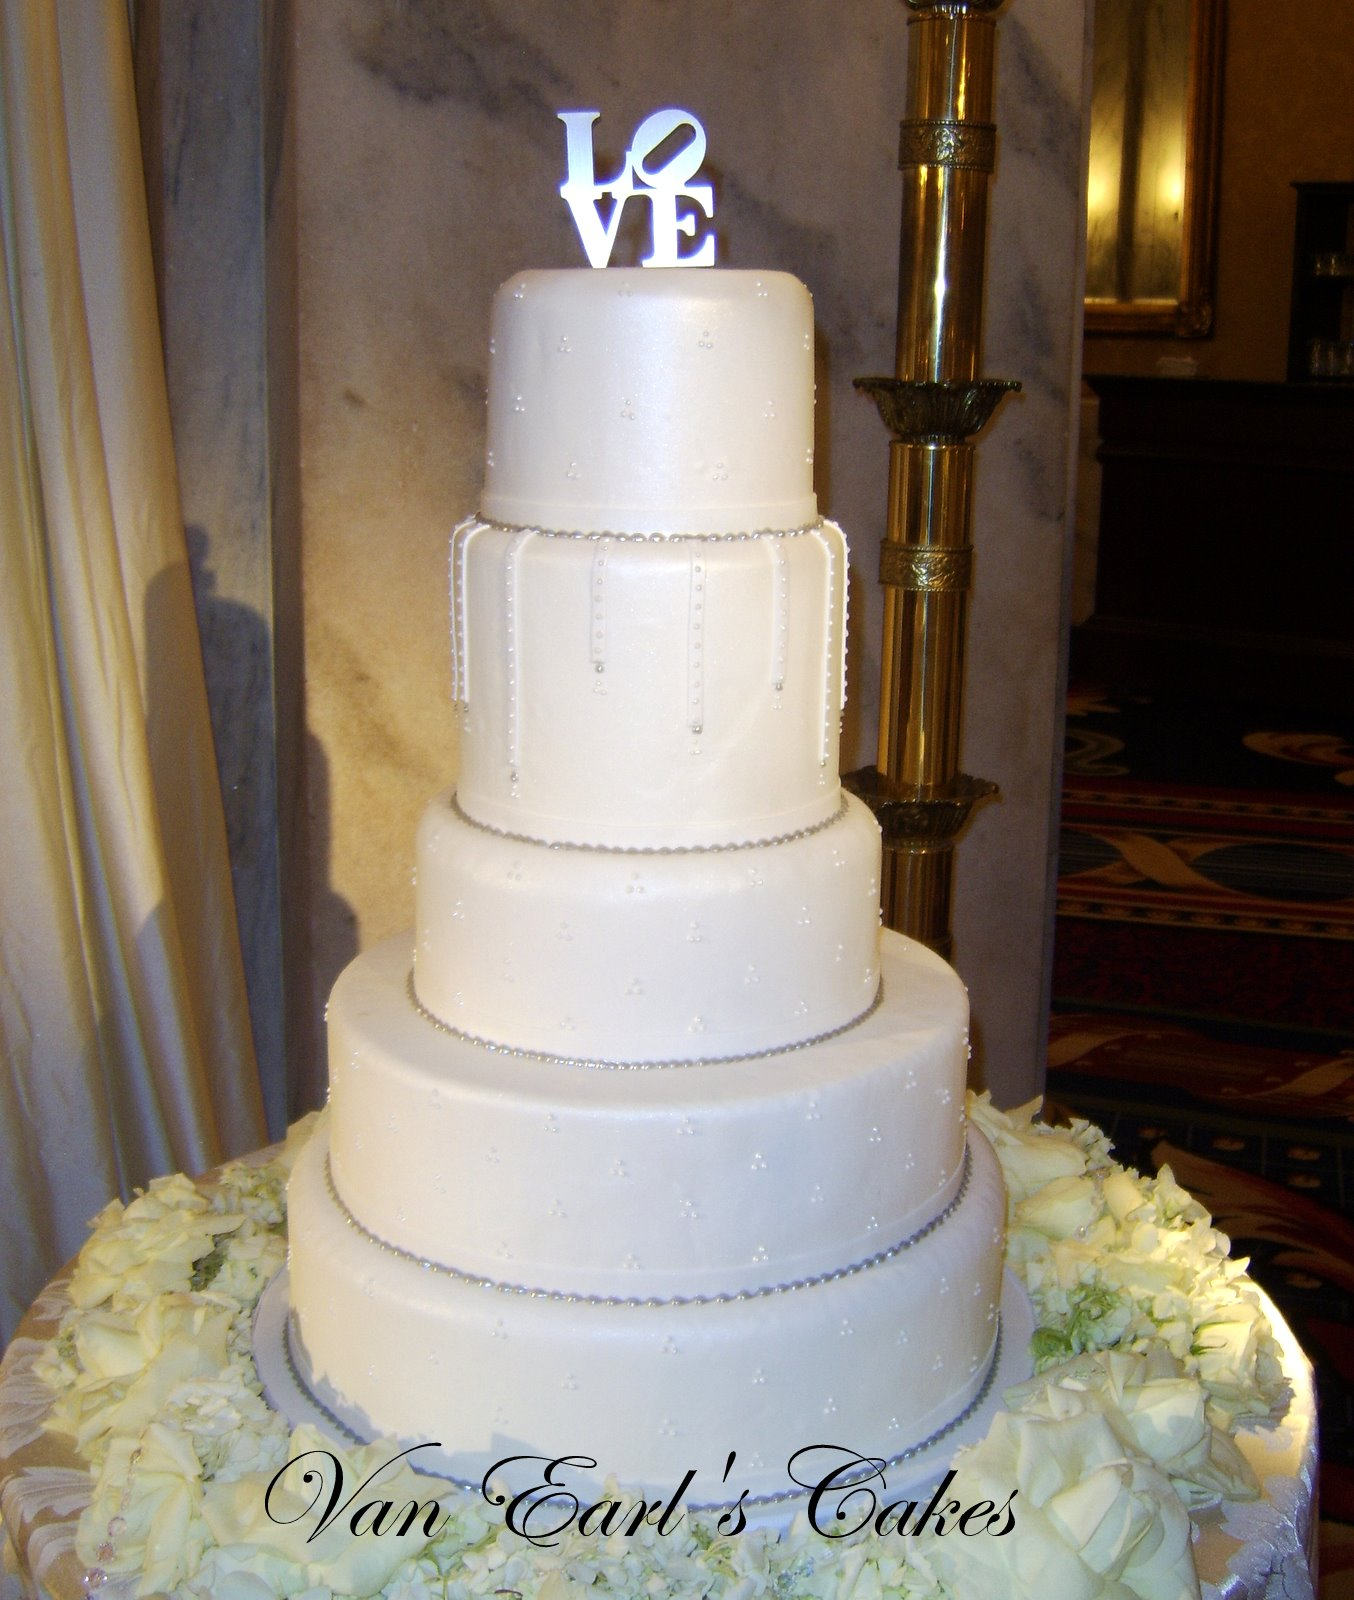 Van Earl s Cakes Five Tier Elegant Pearl White Wedding Cake